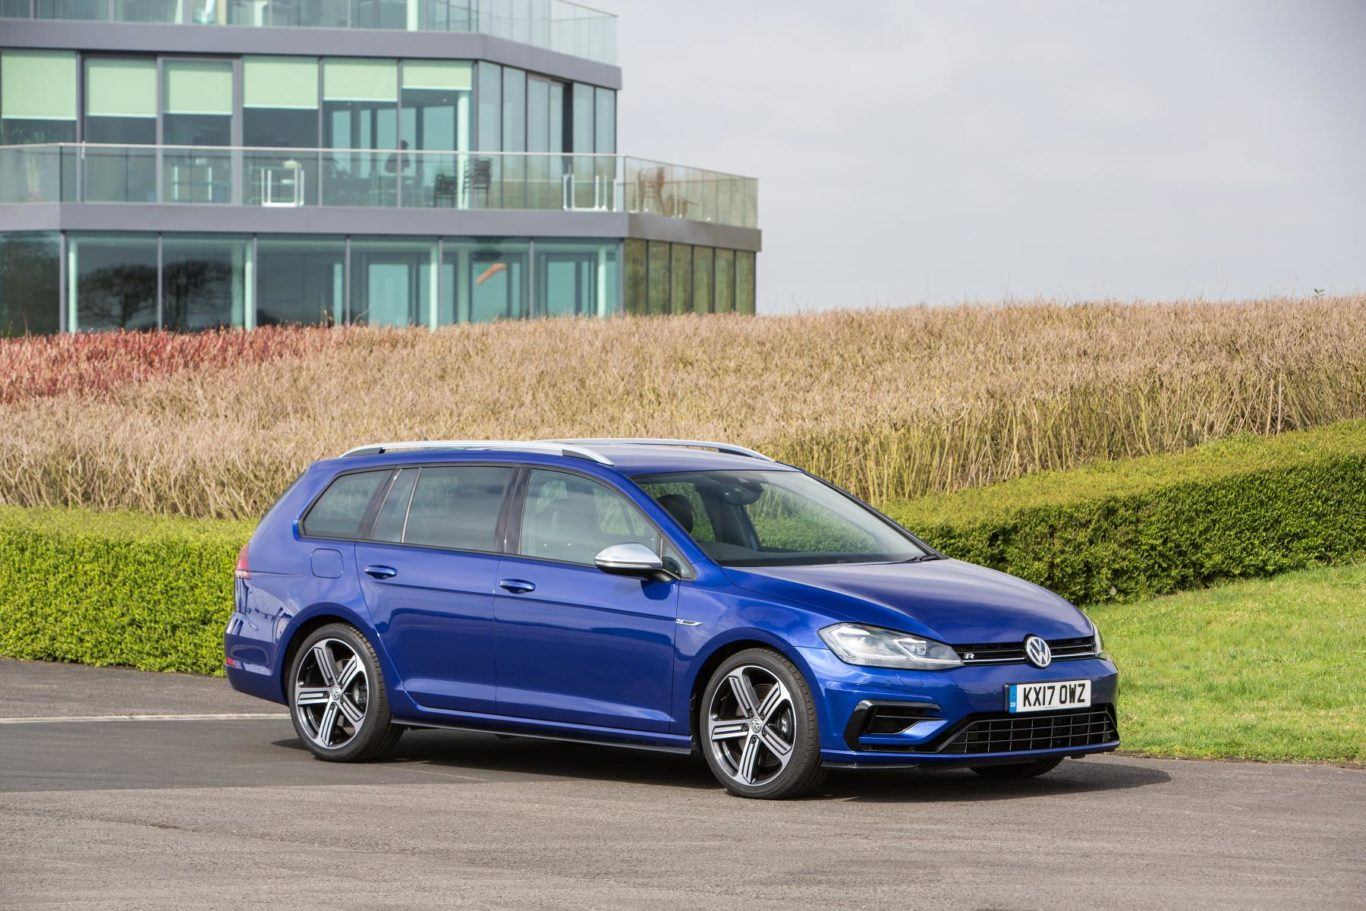 The R Estate is ideal for those who want performance and practicality